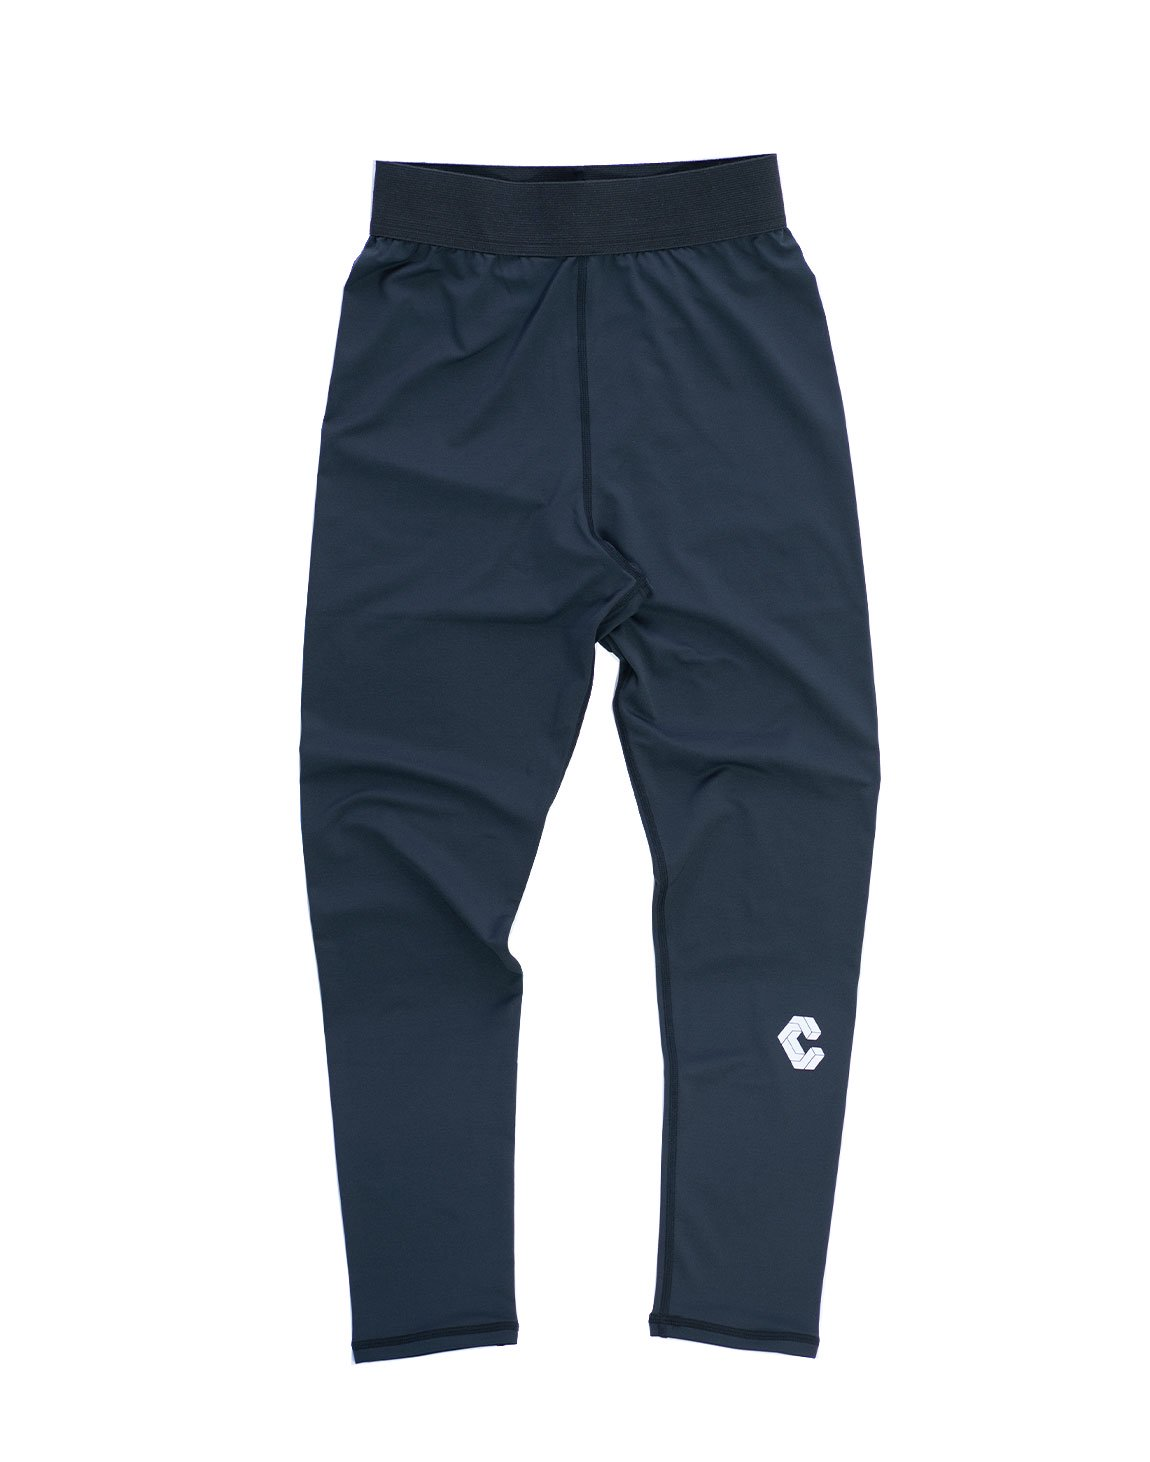 <img class='new_mark_img1' src='https://img.shop-pro.jp/img/new/icons1.gif' style='border:none;display:inline;margin:0px;padding:0px;width:auto;' />CRONOS CALF LOG LEGGINGS